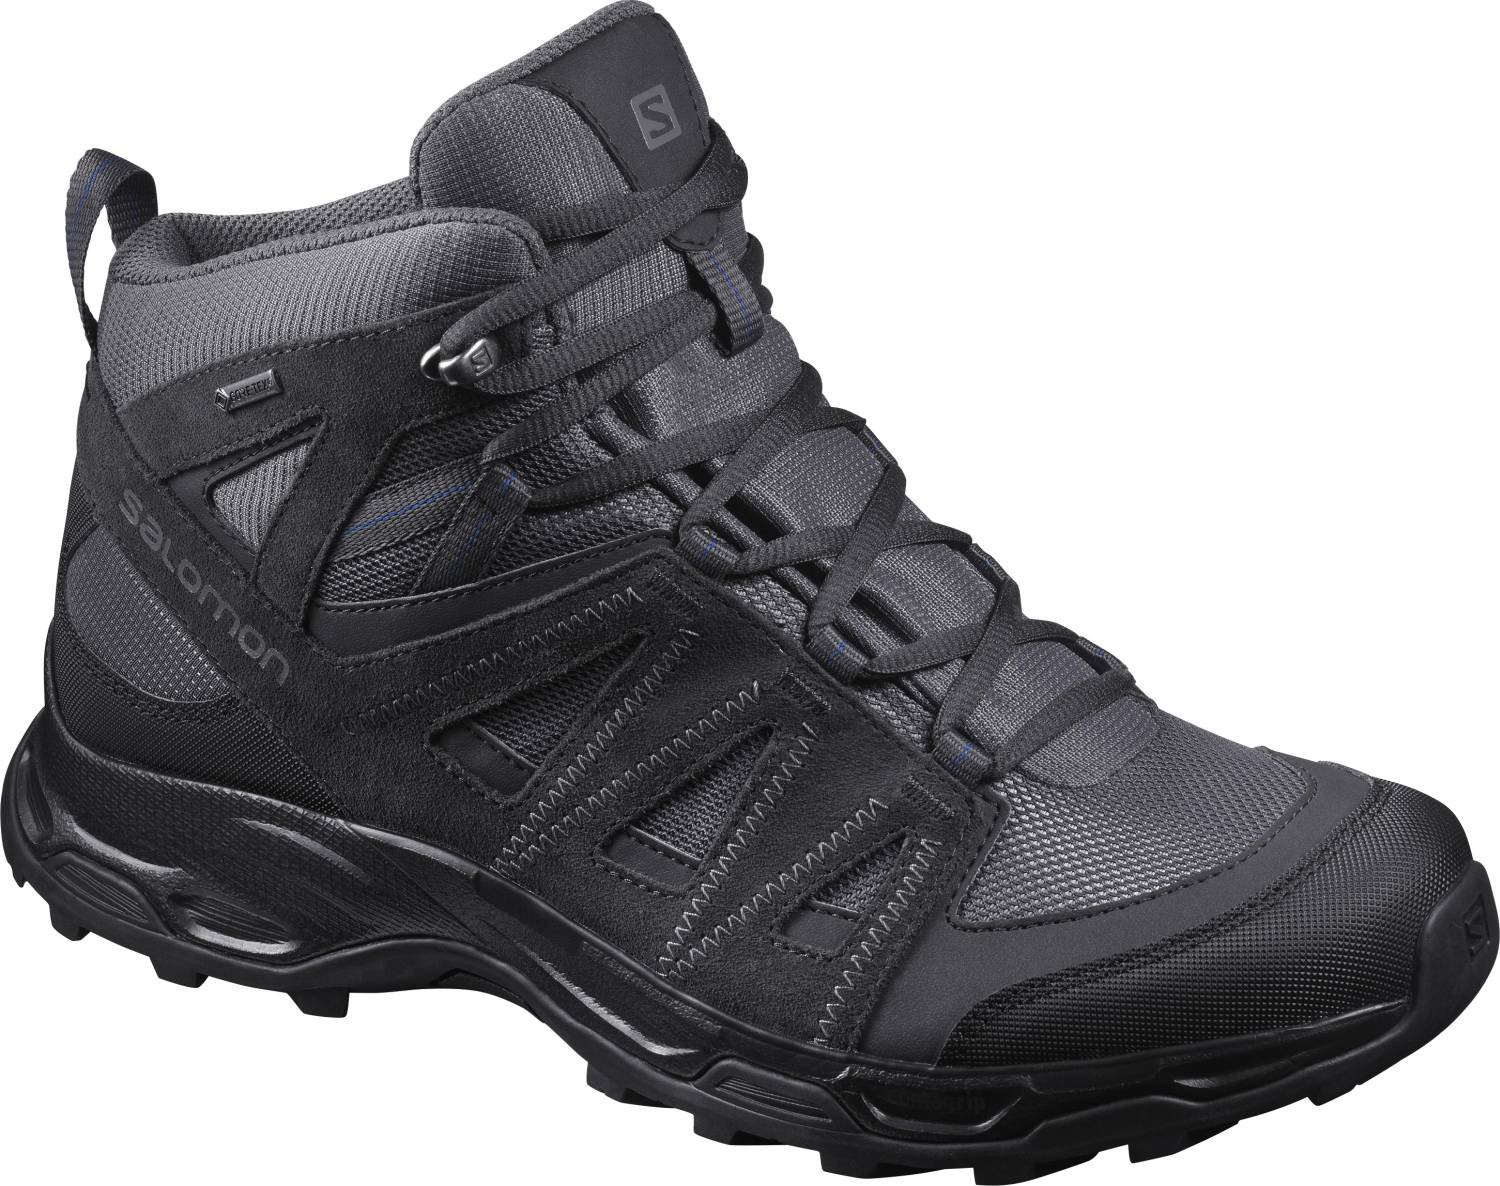 SALOMON SHOES RAVENROCK MID GTX